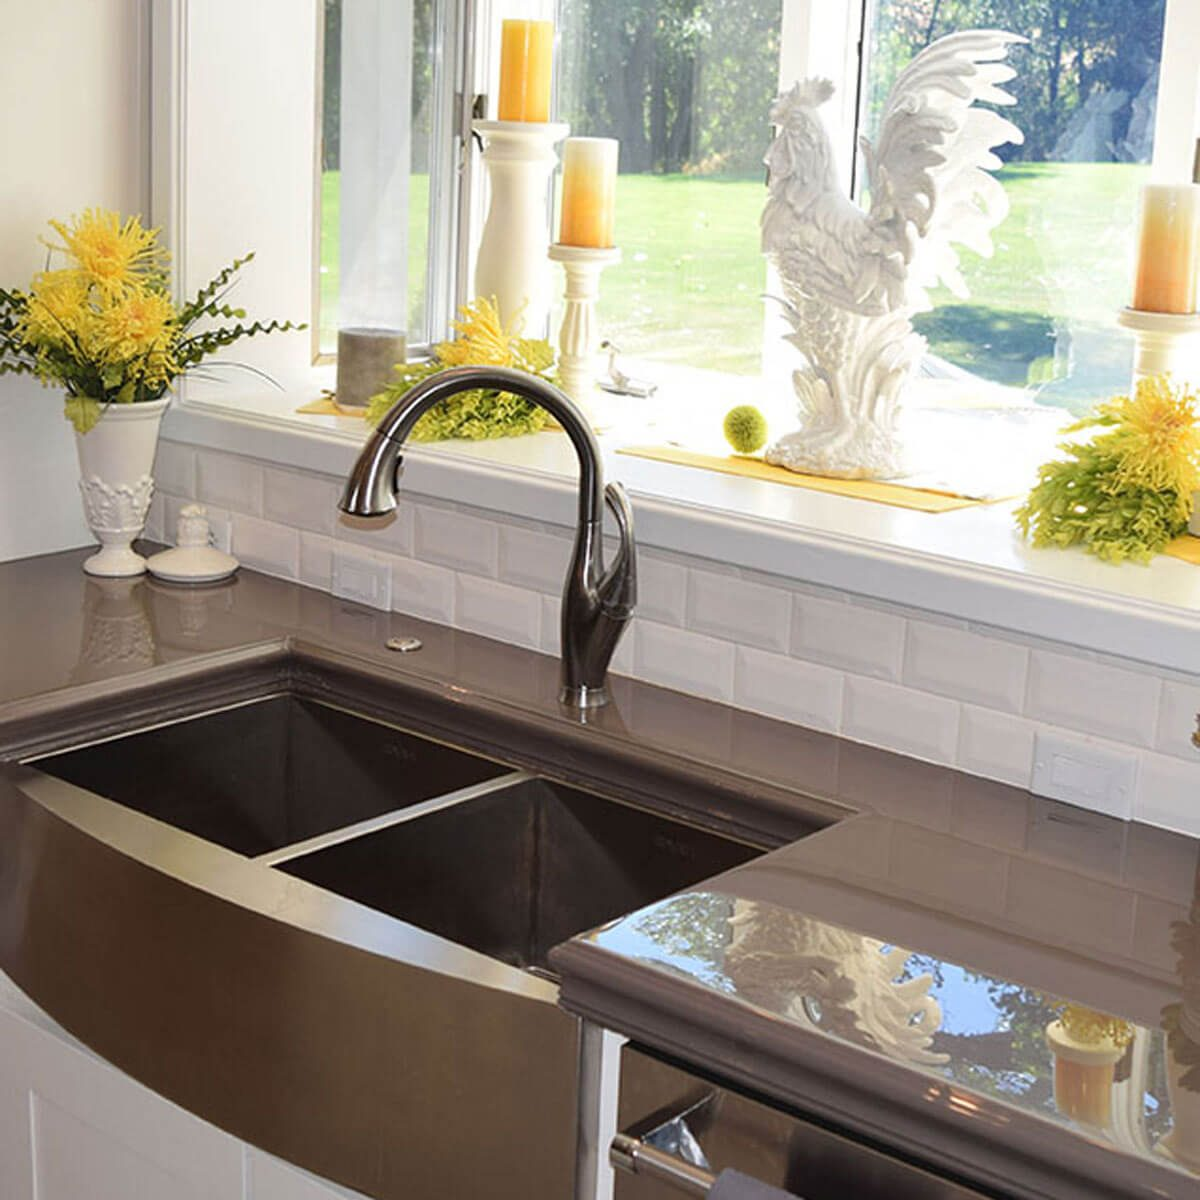 13 Awesome Countertops That Aren't Granite